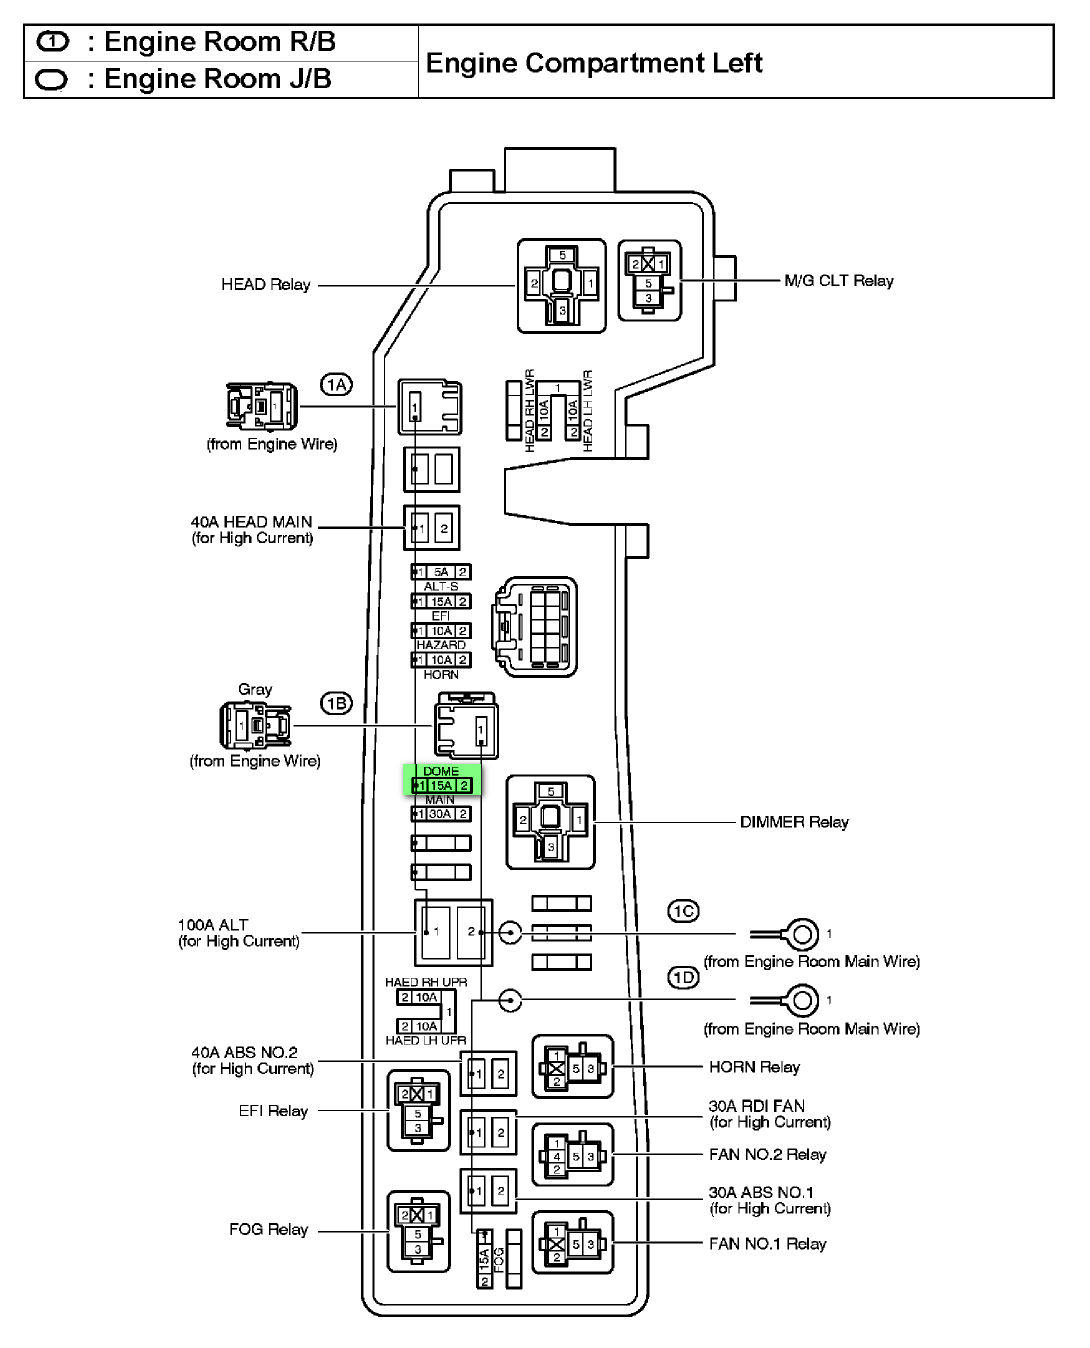 hight resolution of fuse box in 2006 toyota corolla wiring diagrams bibtoyota corolla 2006 fuse box diagram 2004 toyota